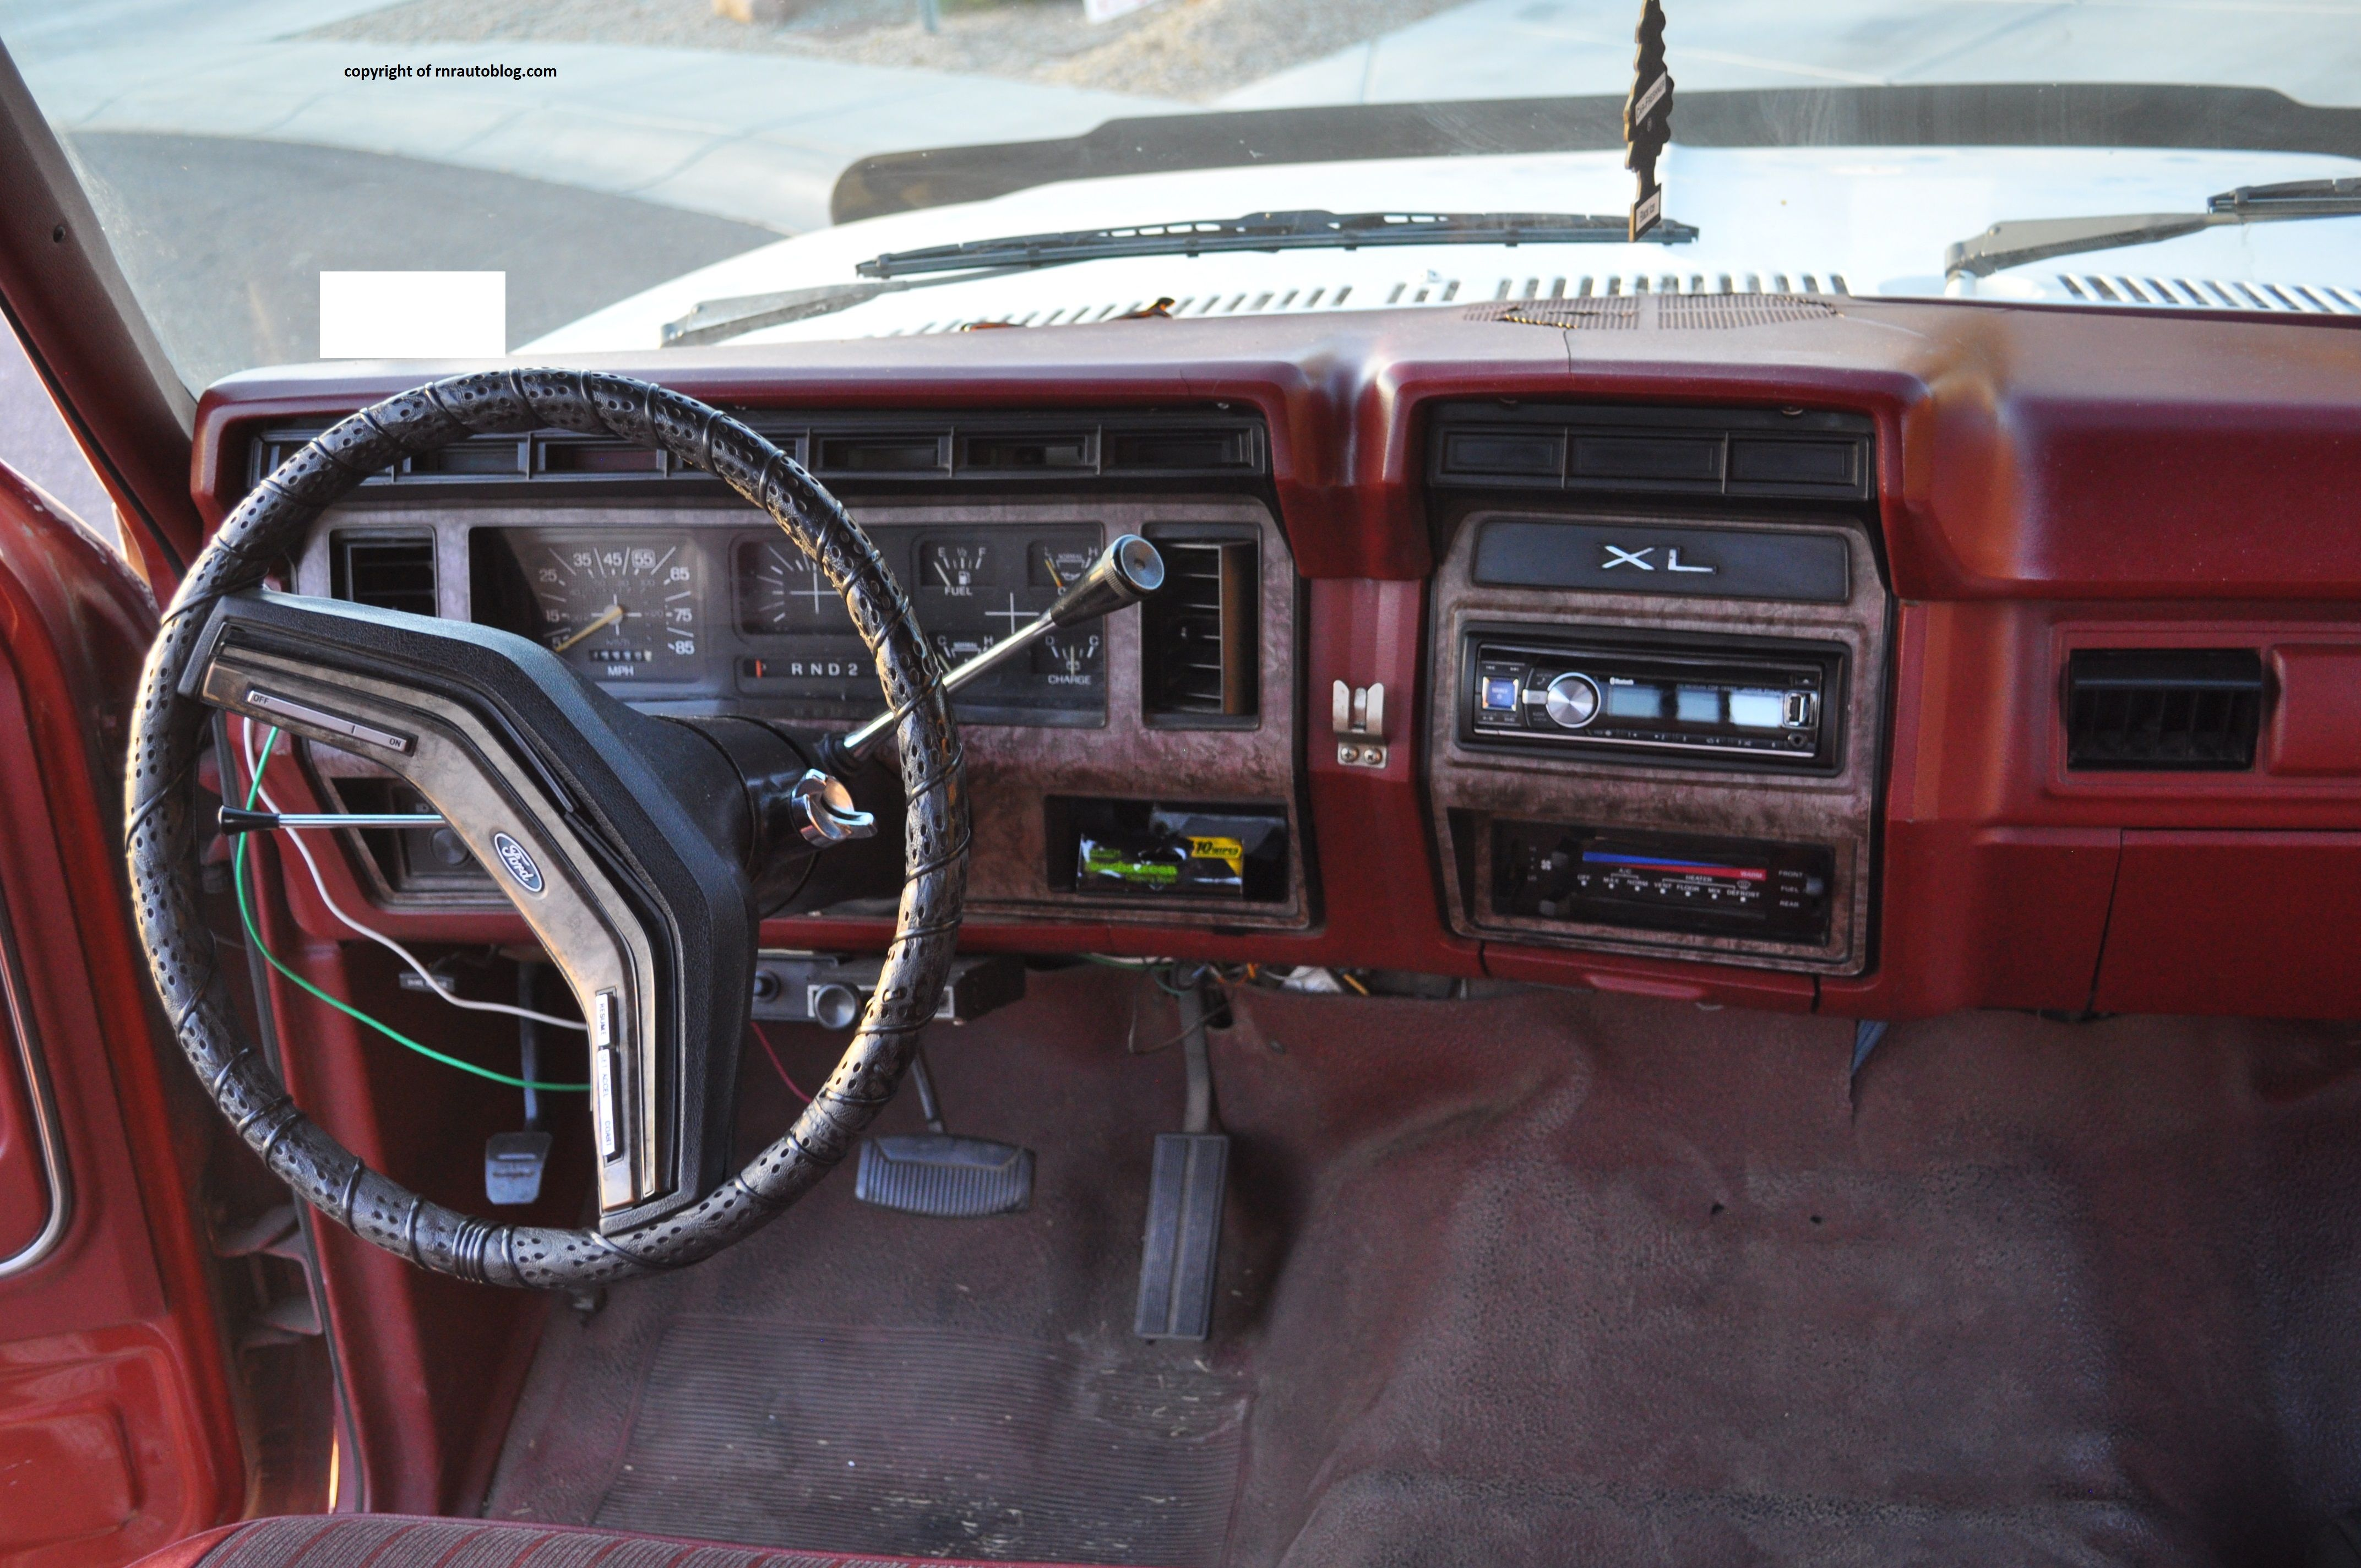 ford 1985 f 150 interior google search classic ford 4x4s rh pinterest com 1980 ford f150 interior parts 1984 Ford F-150 Interior